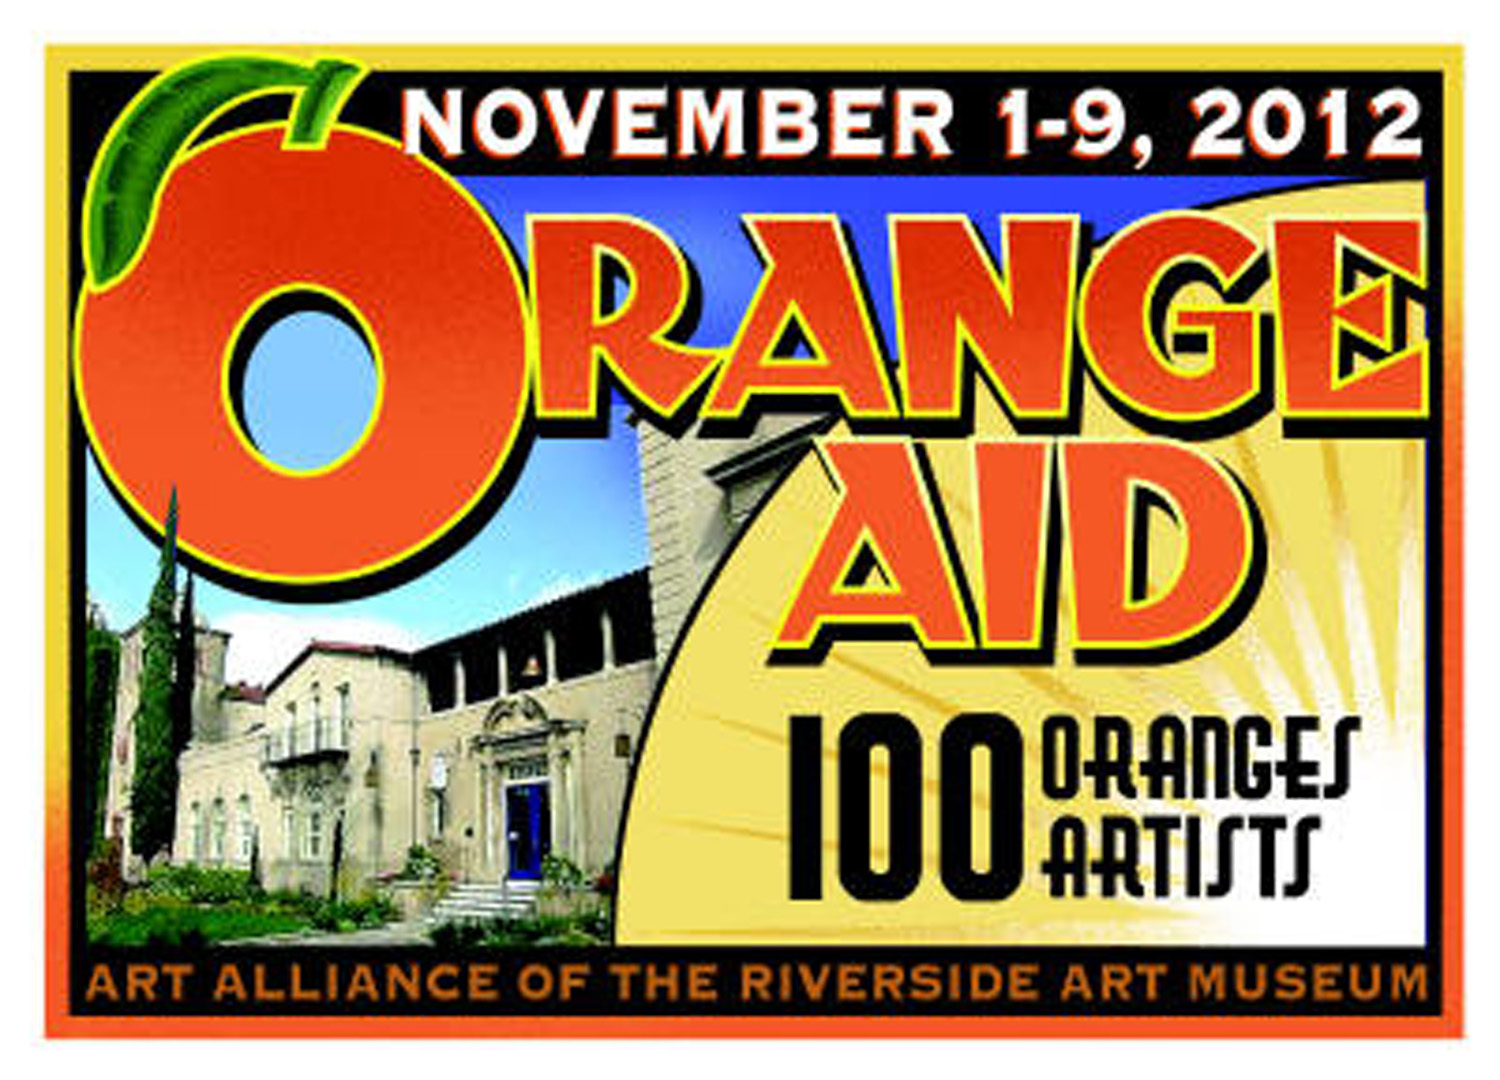 Oranges for Riverside -- a worthy cause and a fun project to work on!